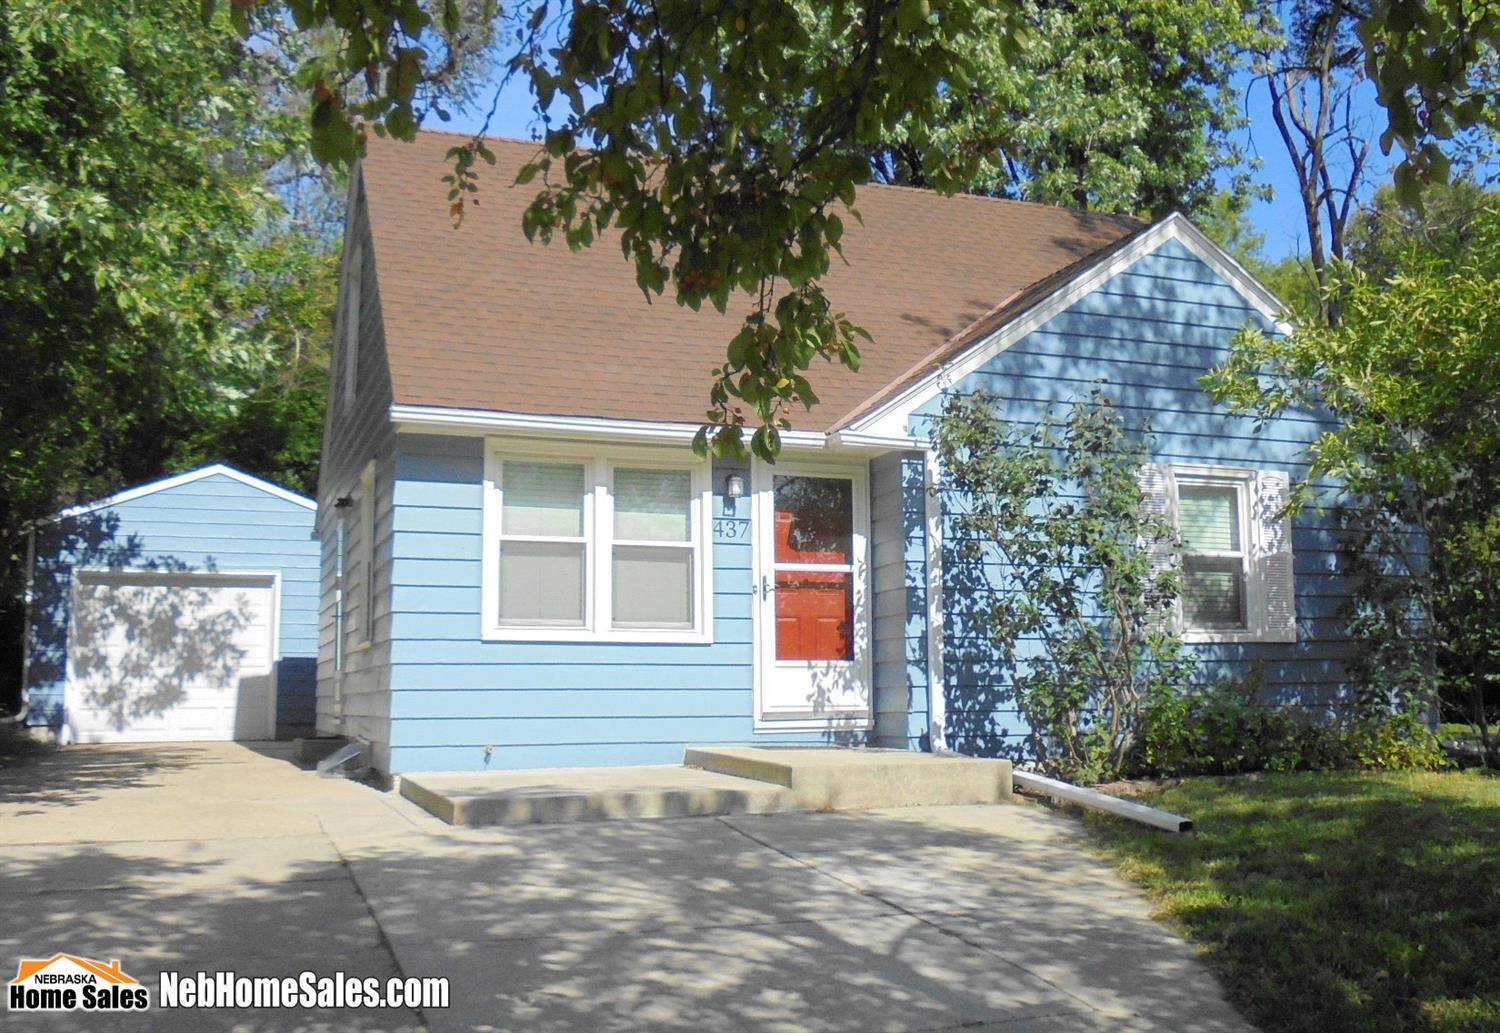 Photo of 437 North Cotner Boulevard  Lincoln  NE